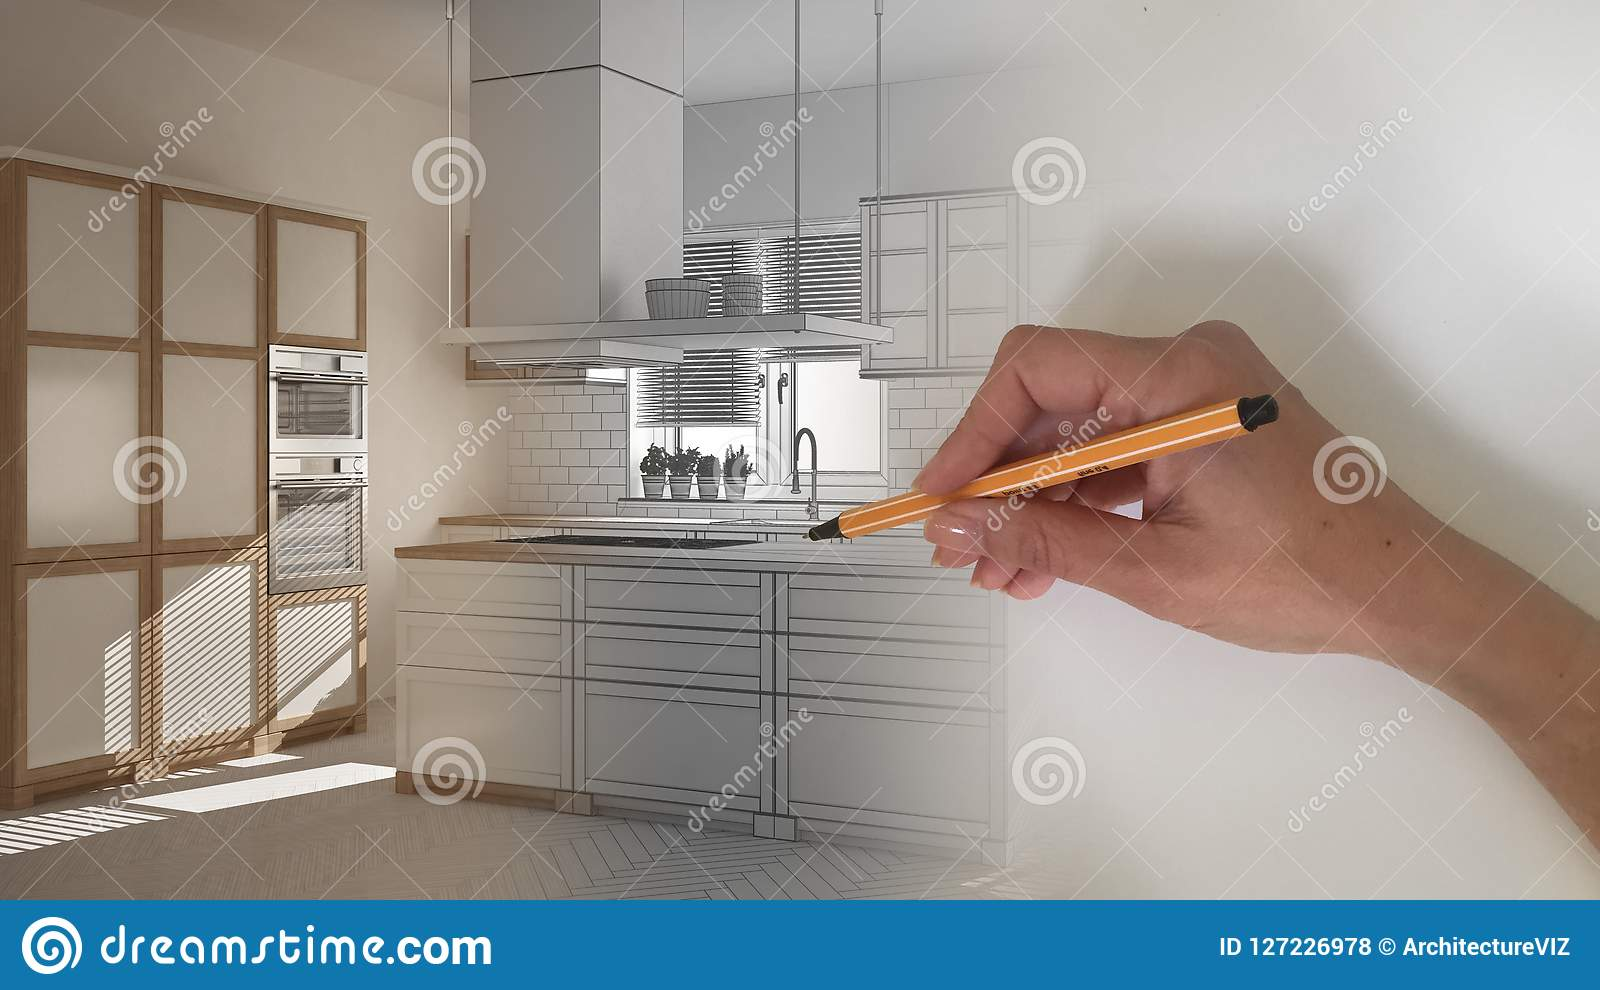 Architect interior designer concept: hand drawing a design interior project while the space becomes real, white wooden modern kitc